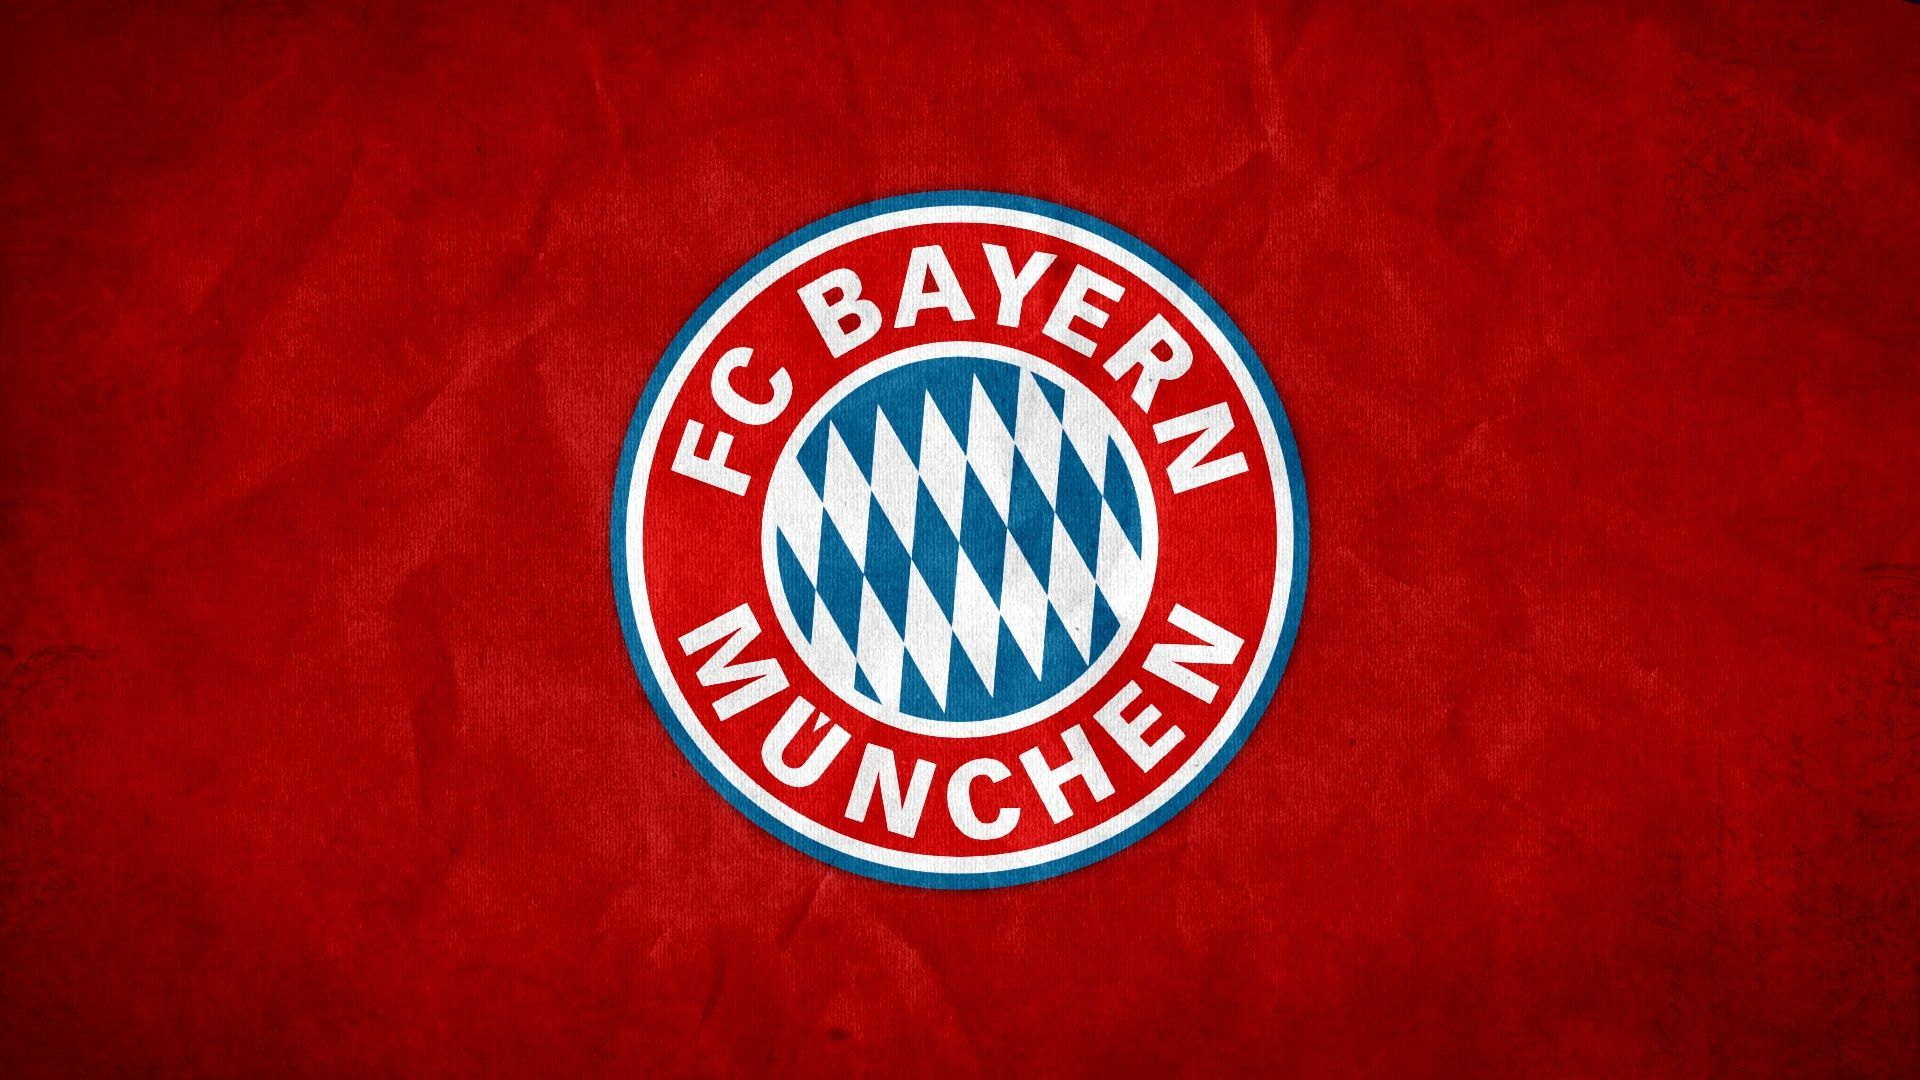 Bayern-Munchen-Football-Club-Football-HD-1920×1080-Bayern-Munich-wallpaper-wp3402924